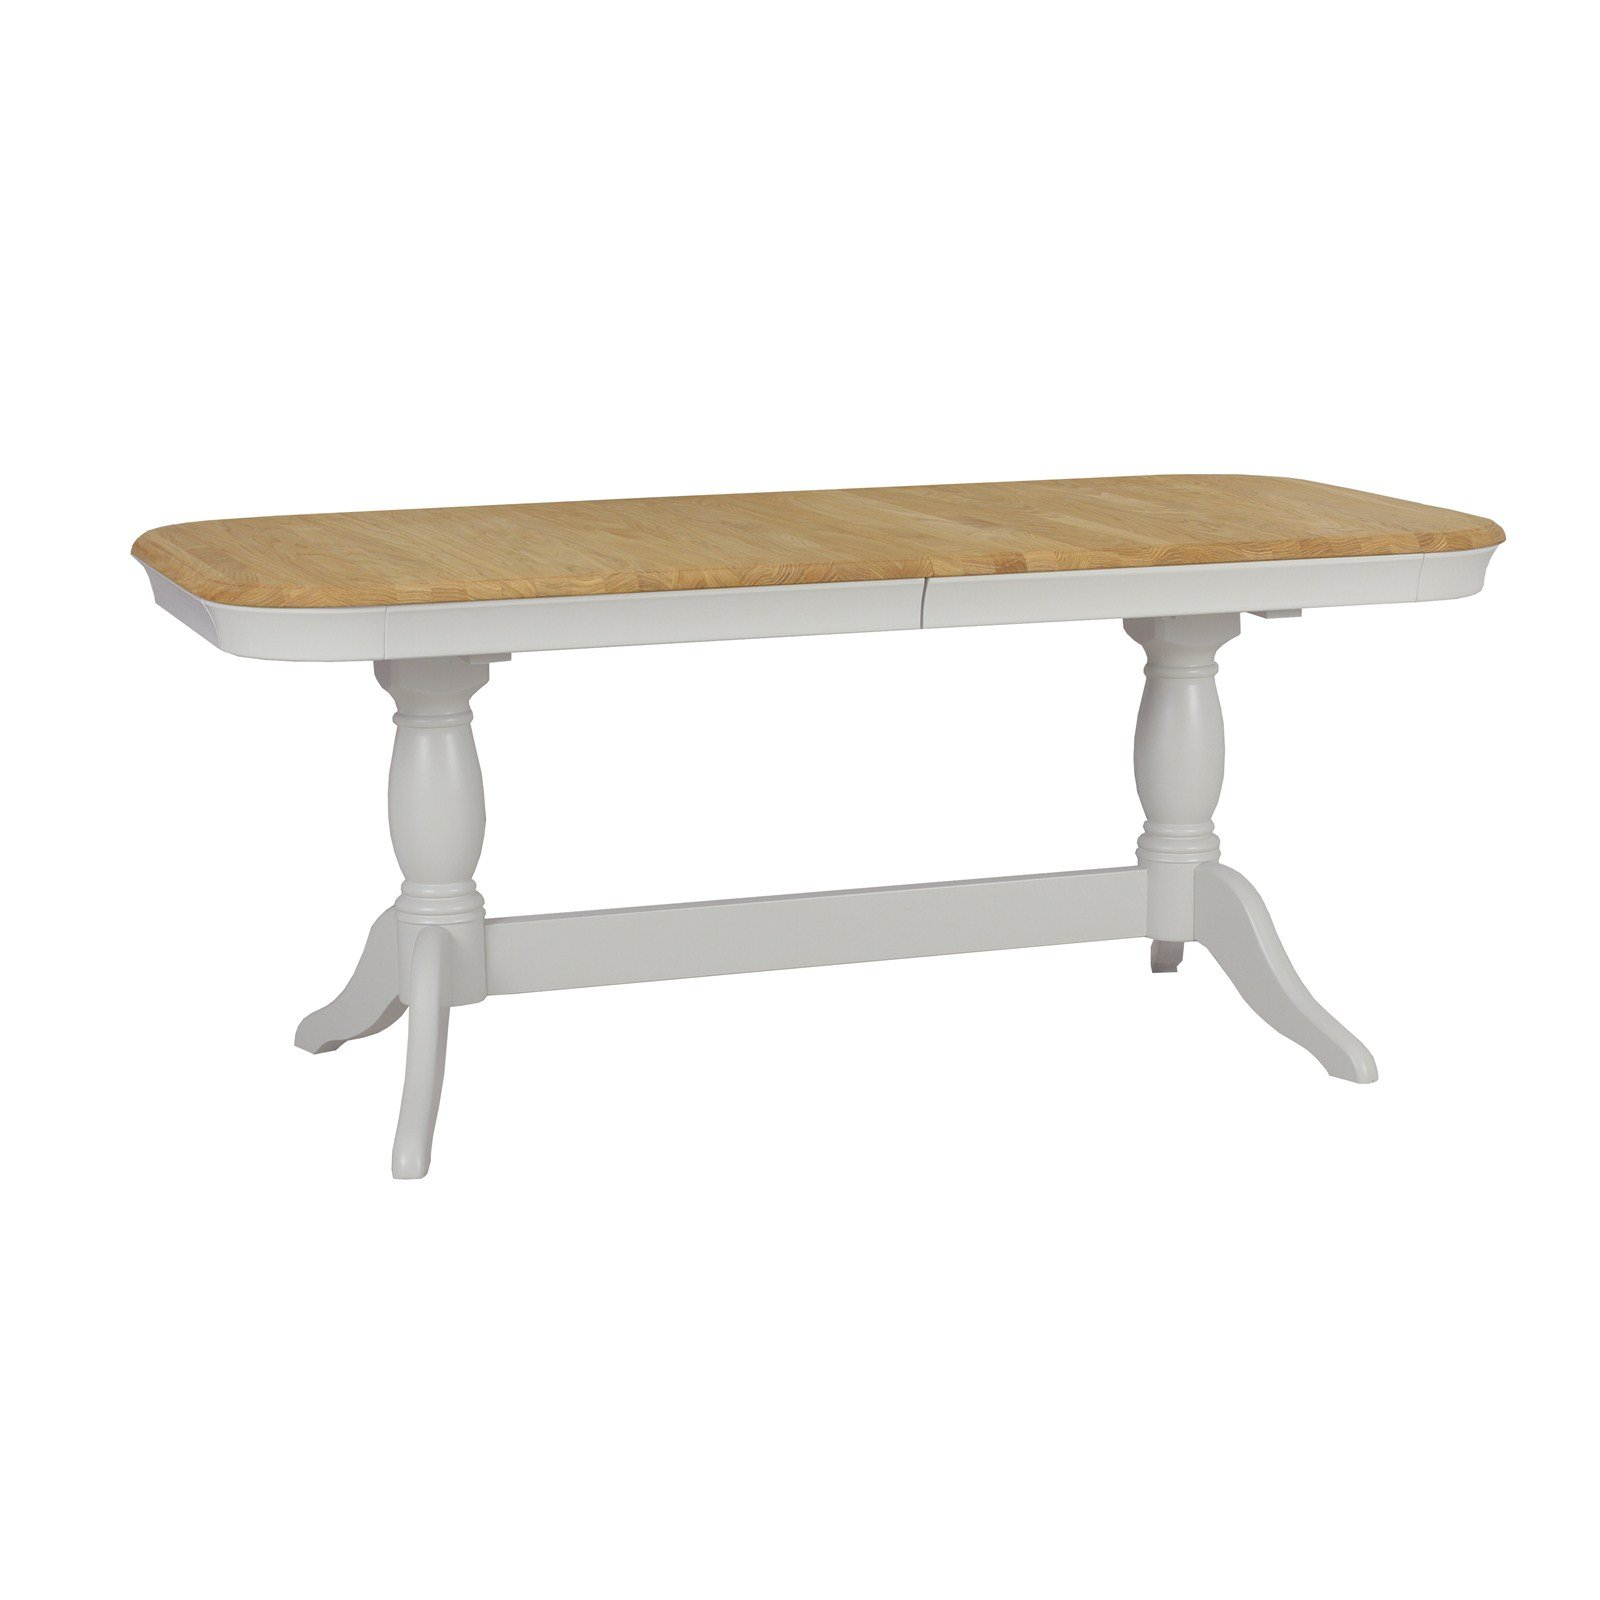 Stag Cromwell 180-230cm Twin Pedestal Dining Table